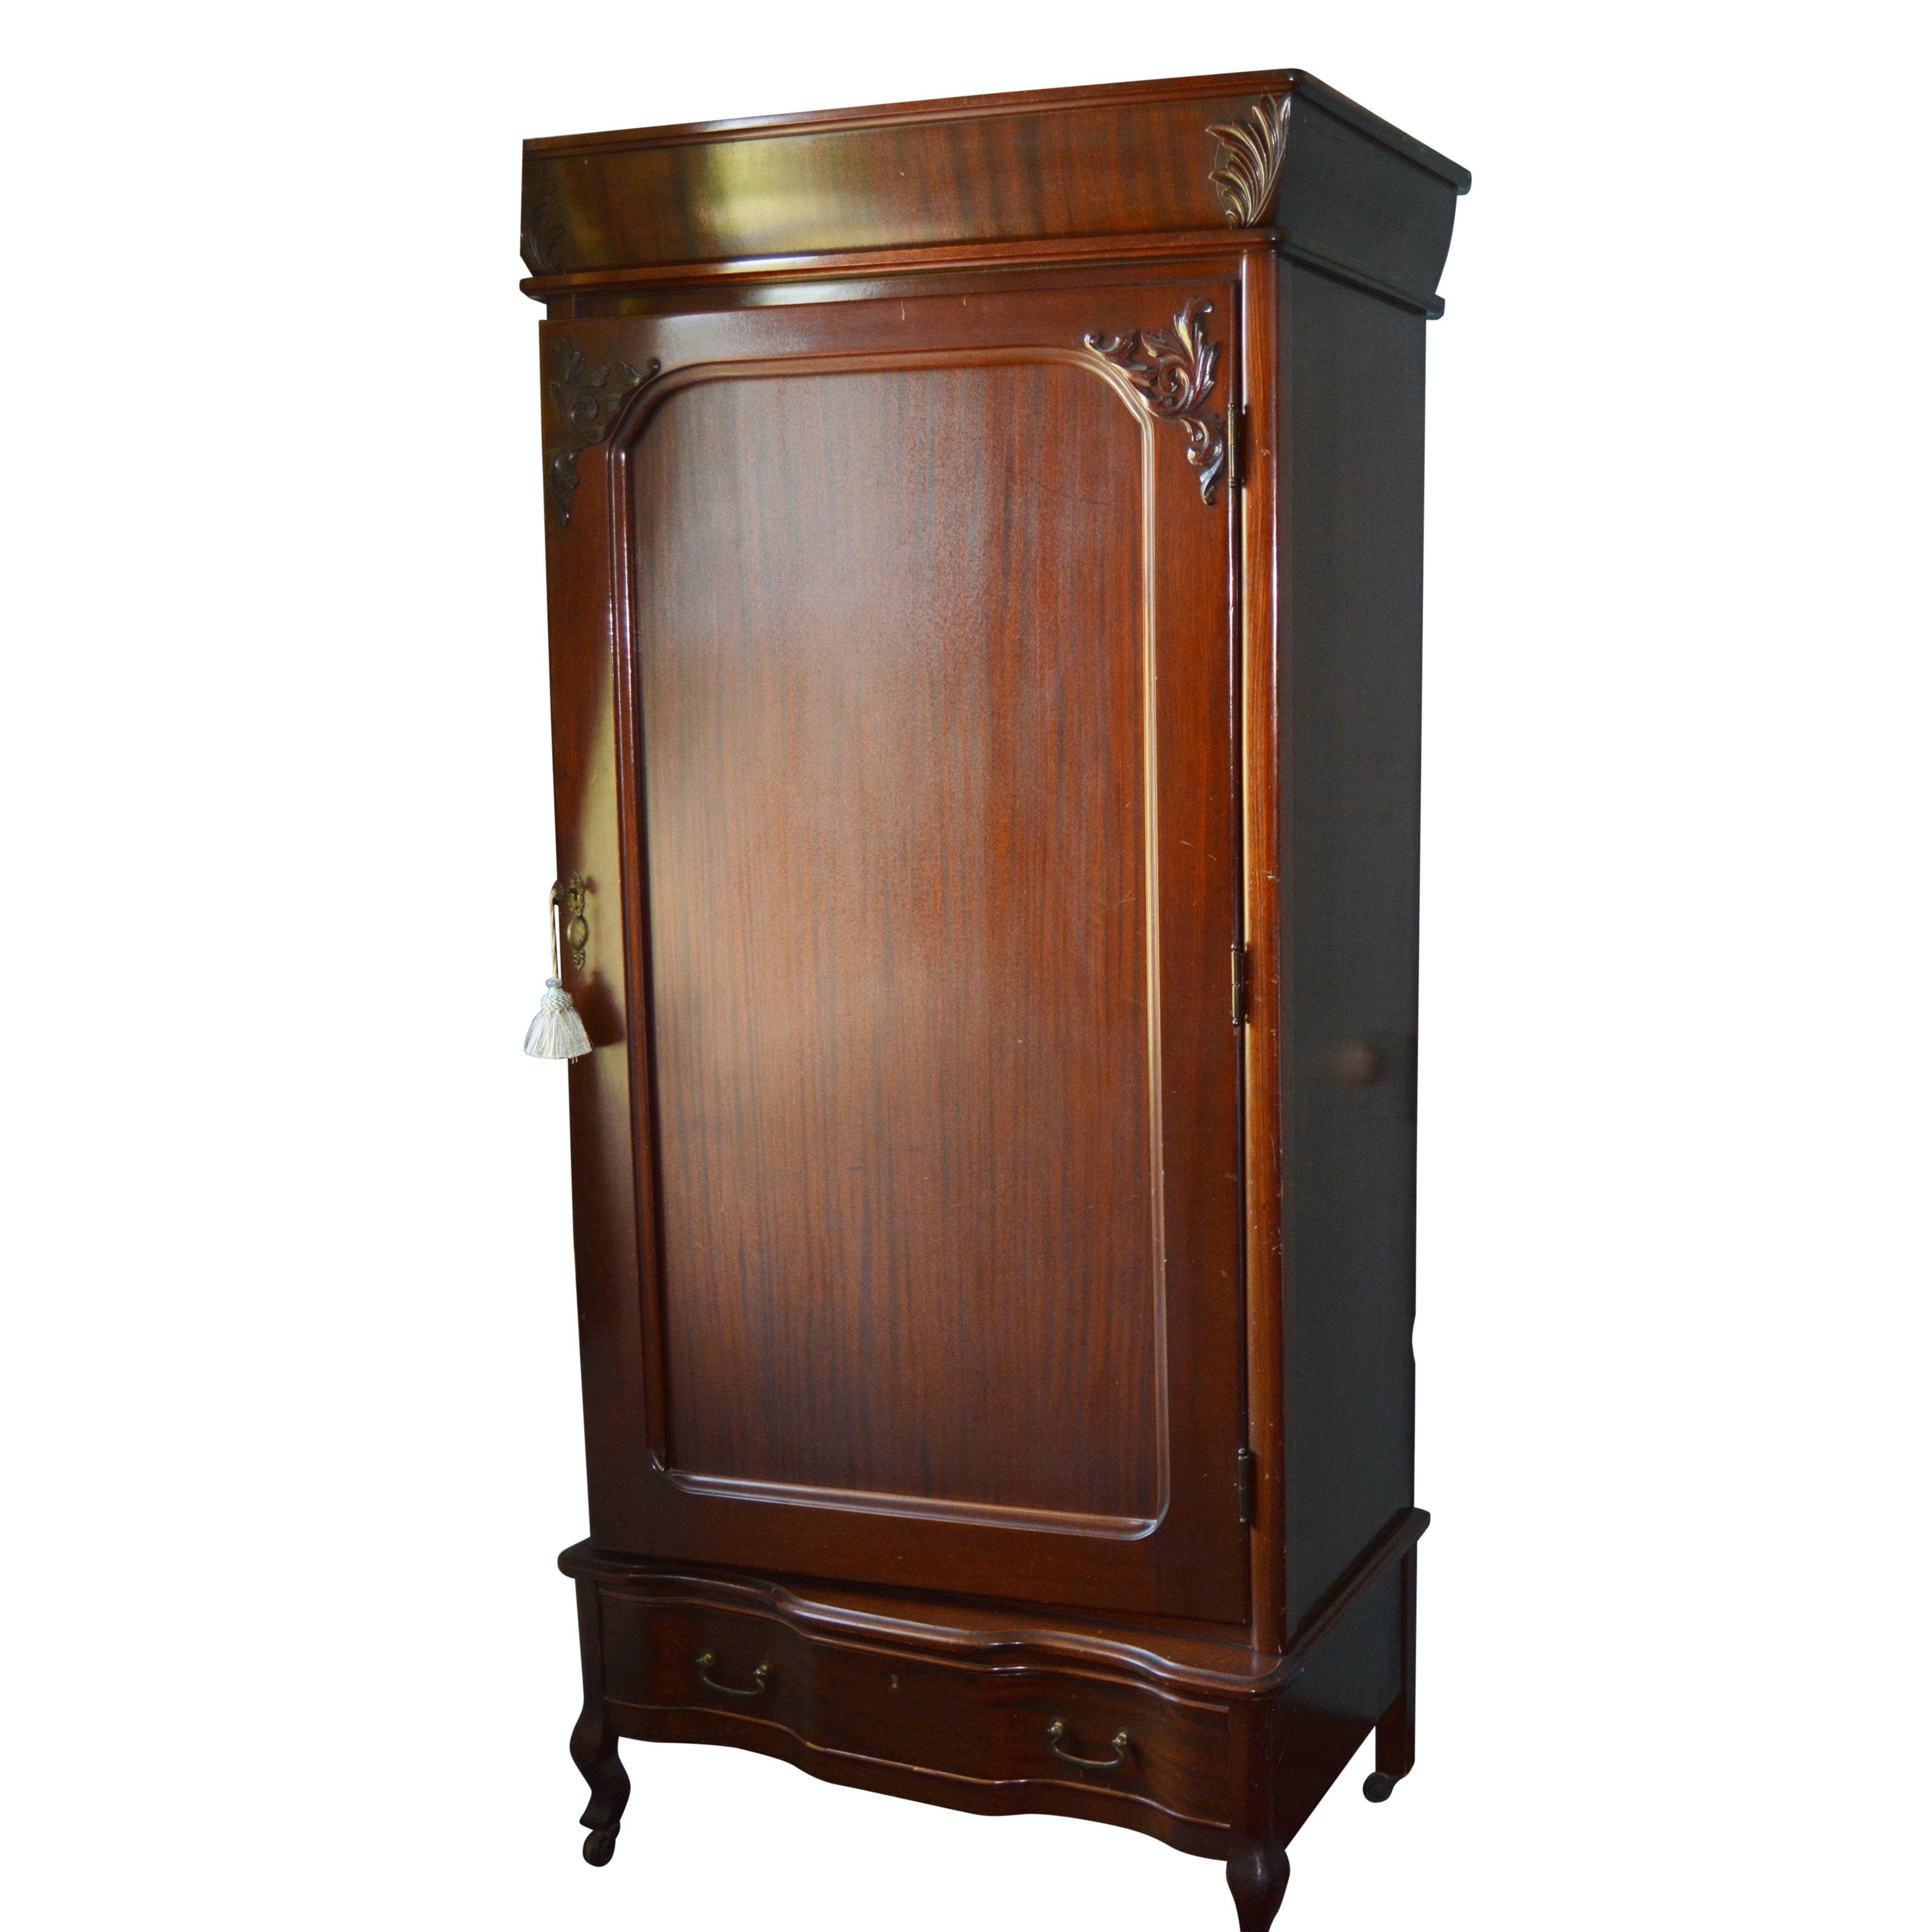 Antique Rococo Revival Style Mahogany Armoire, Early 20th Century